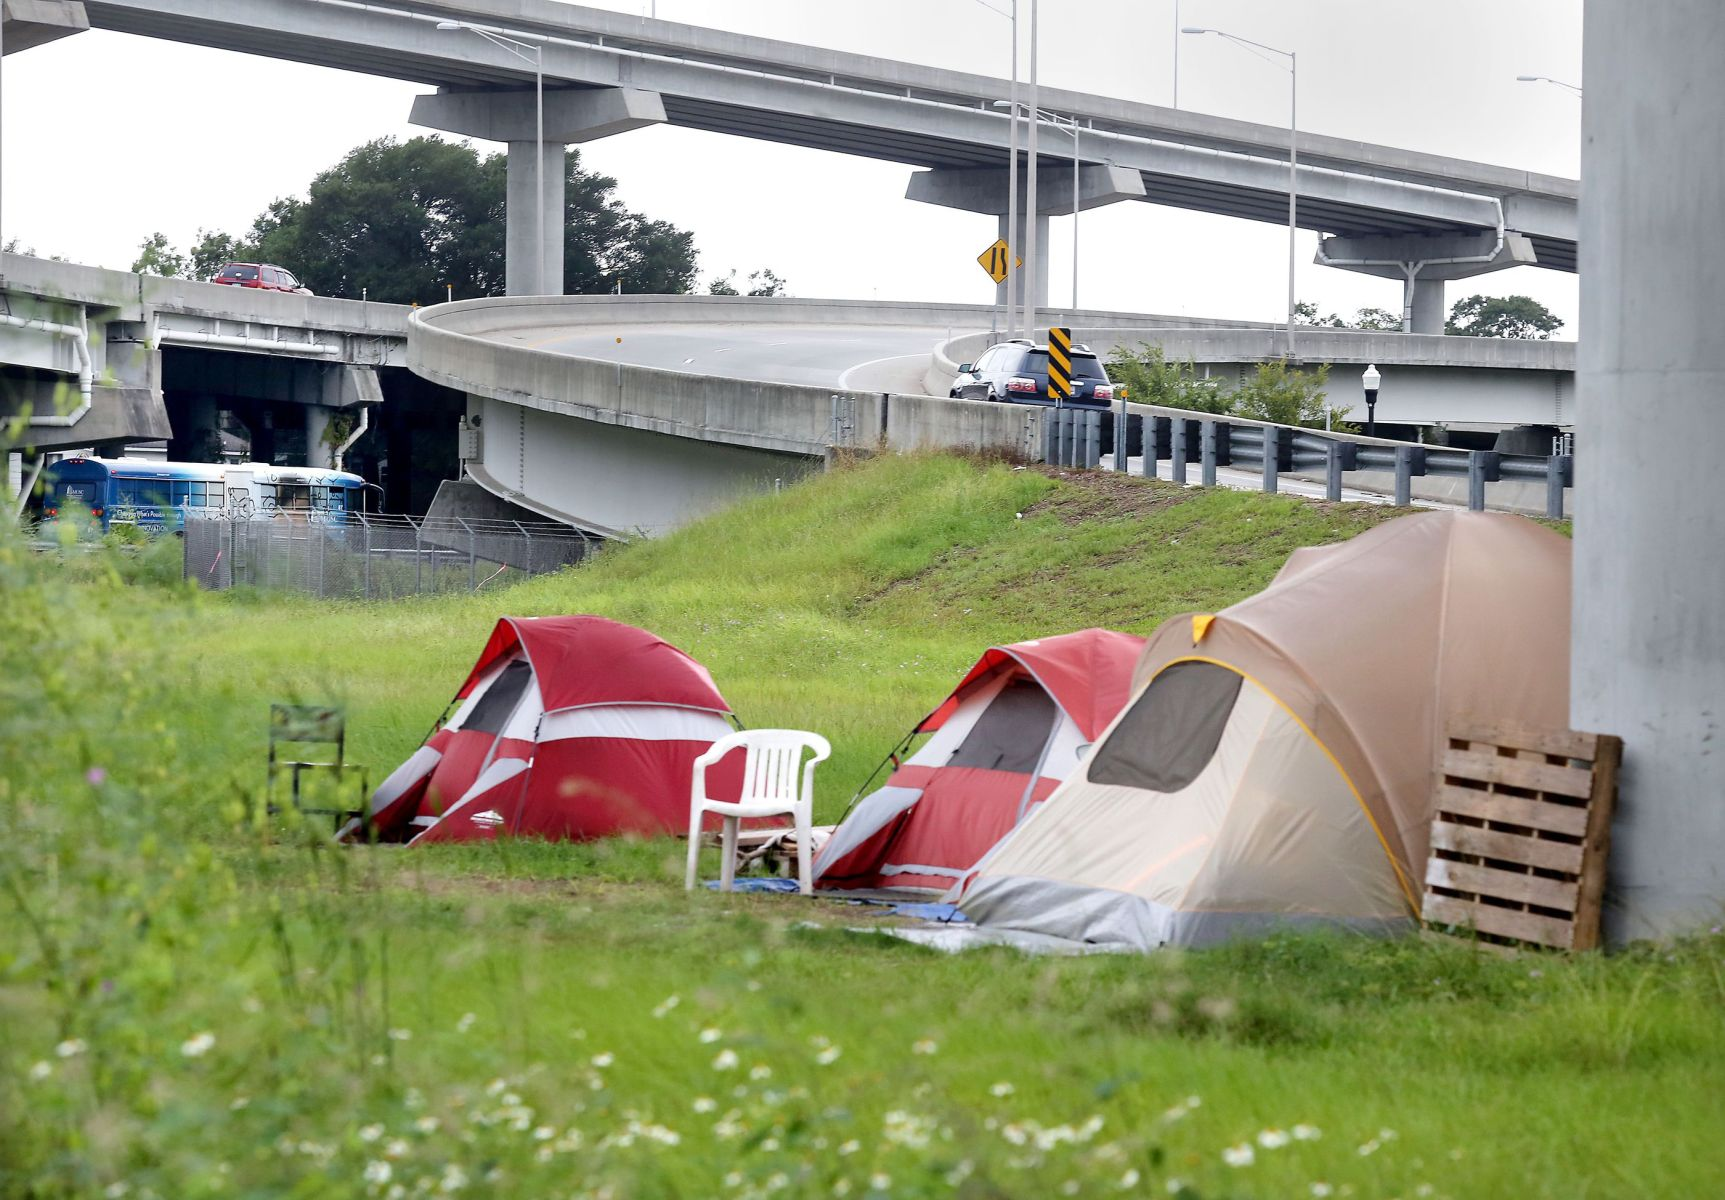 Tent town hurts homeless city & Tent town hurts homeless city   Opinion   postandcourier.com